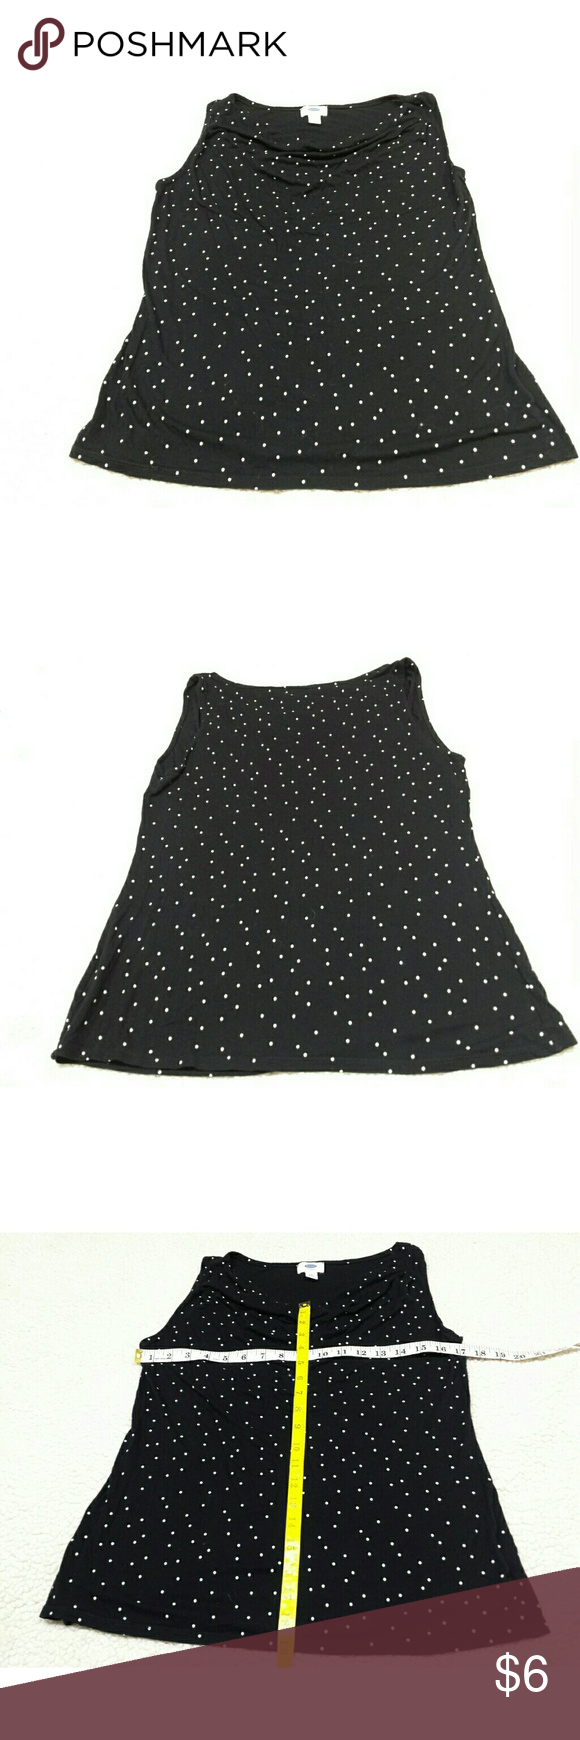 OLD NAVY BLK W/ WHITE POLKA DOTS SIZE M OLD NAVY BLK W/ WHITE POLKA DOTS SIZE M OLD NAVY  Tops Blouses